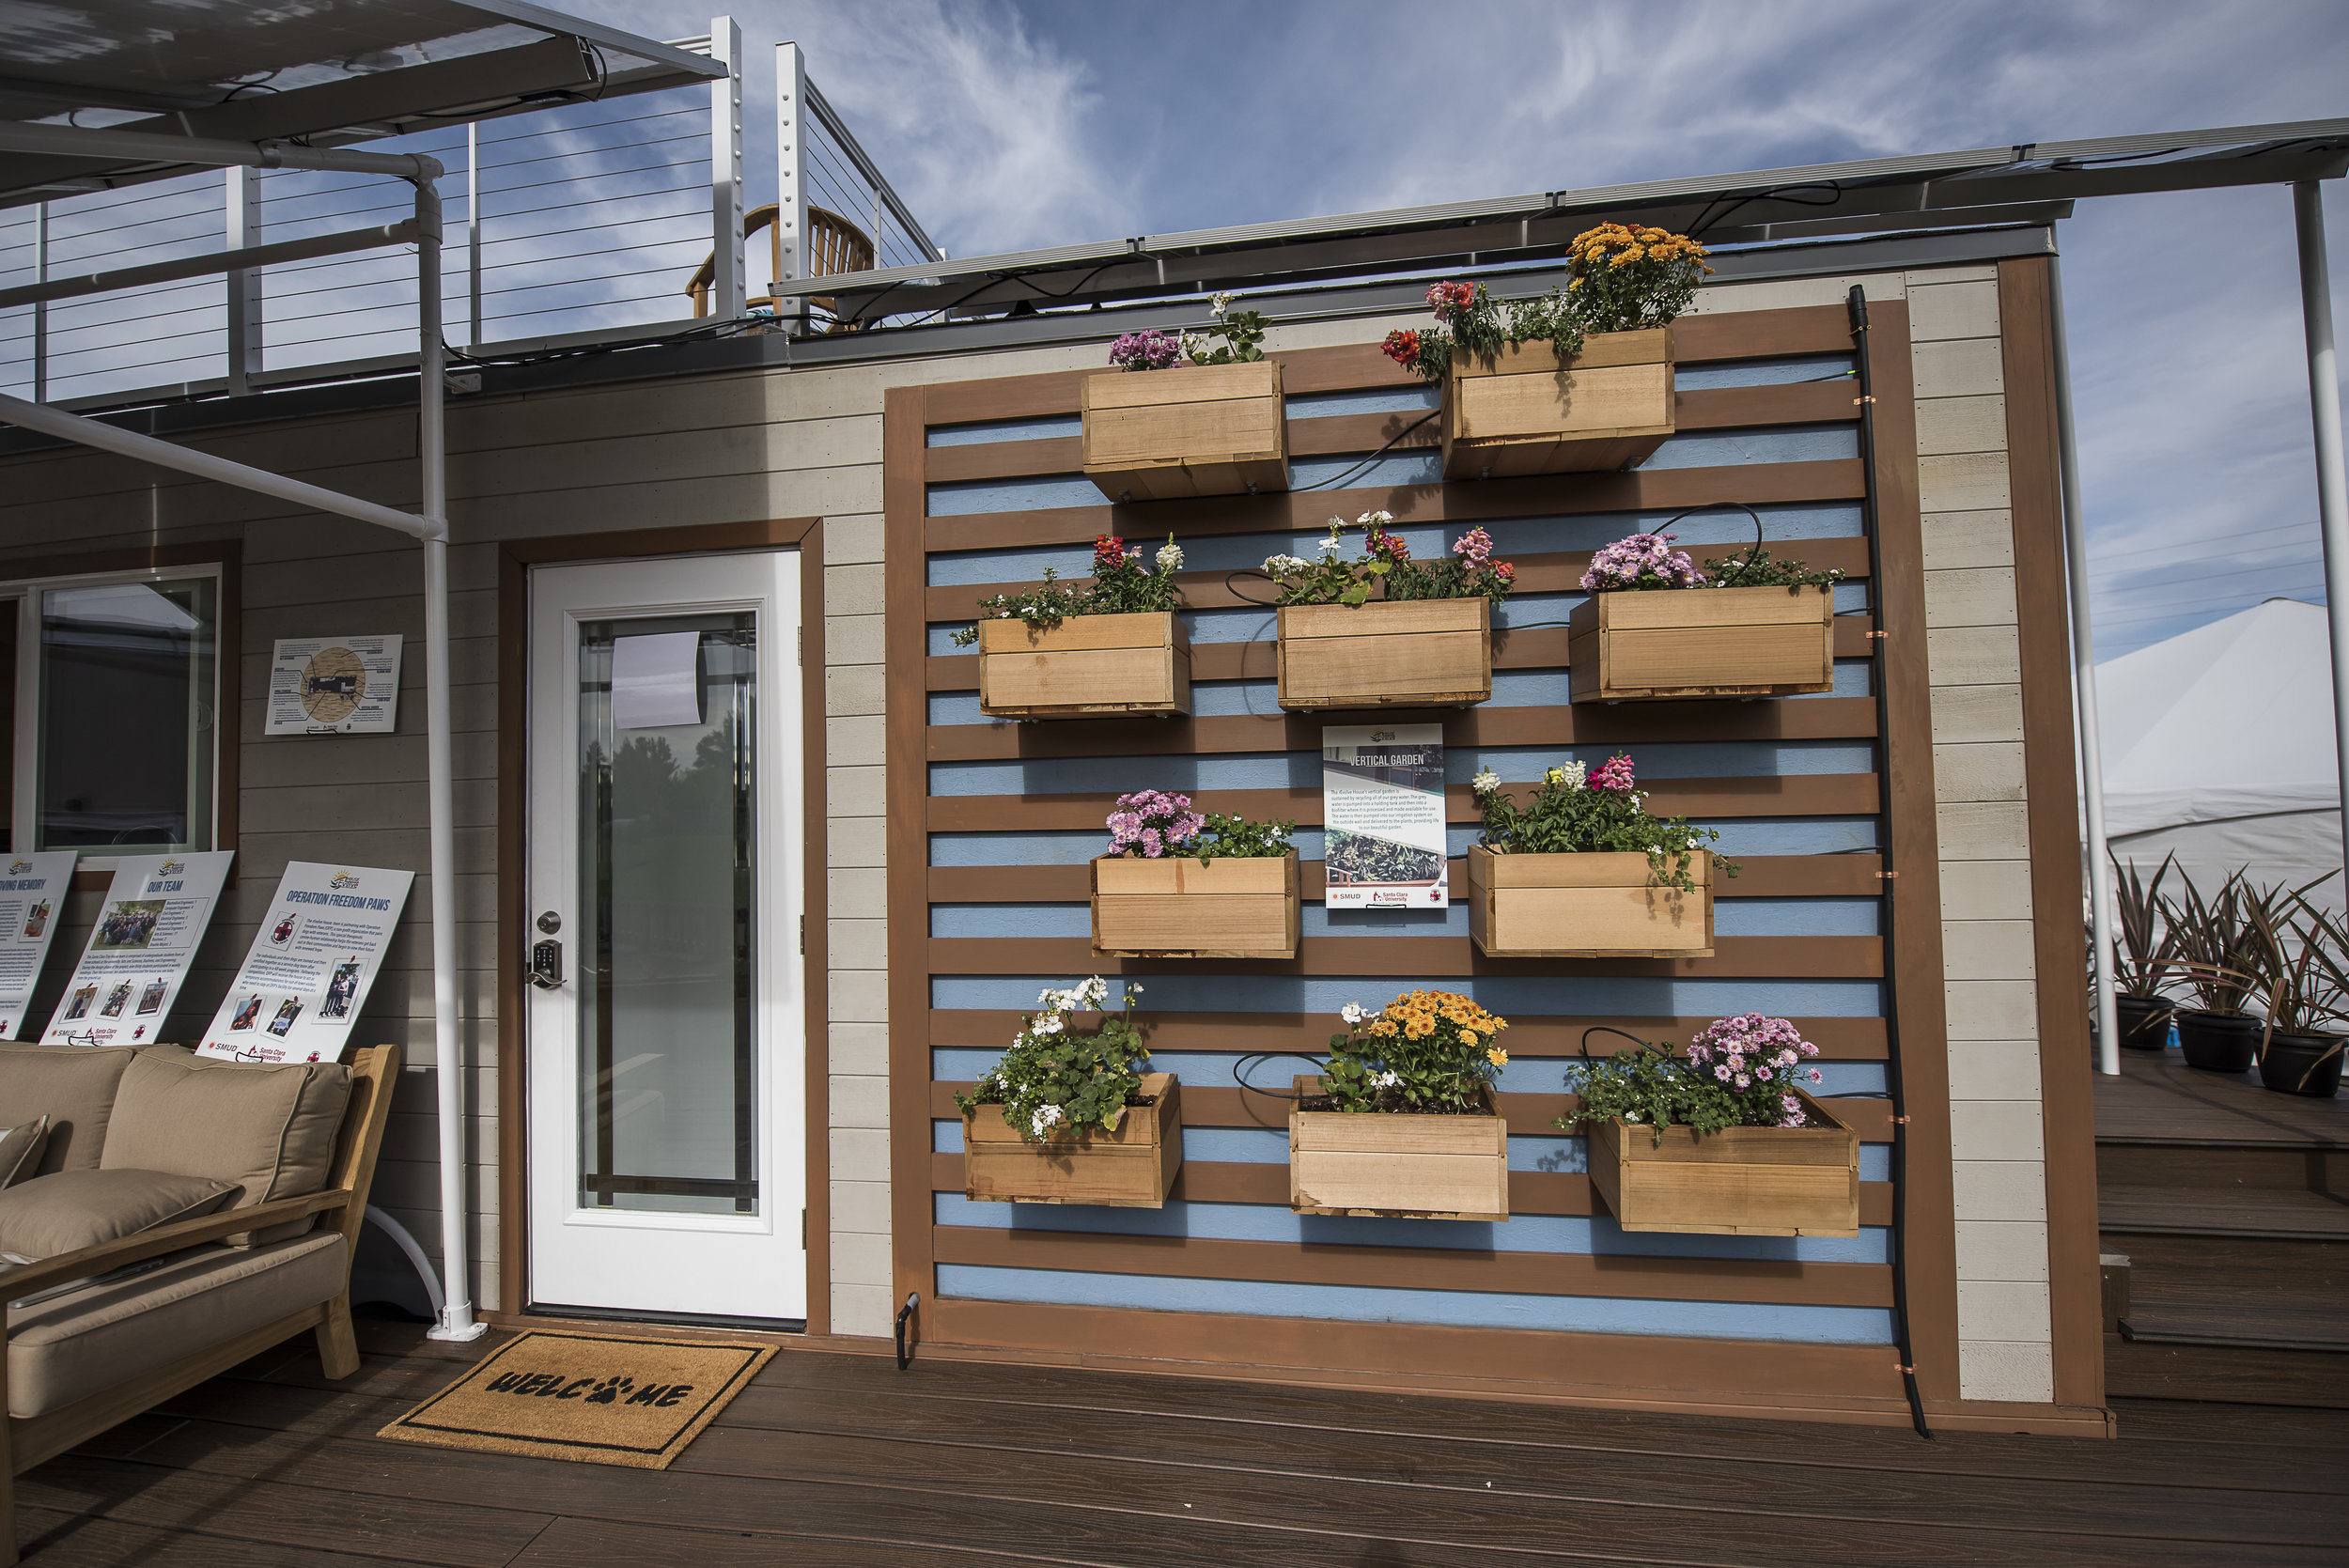 JL161013_4161_0279_TinyHouseCompetition.jpg